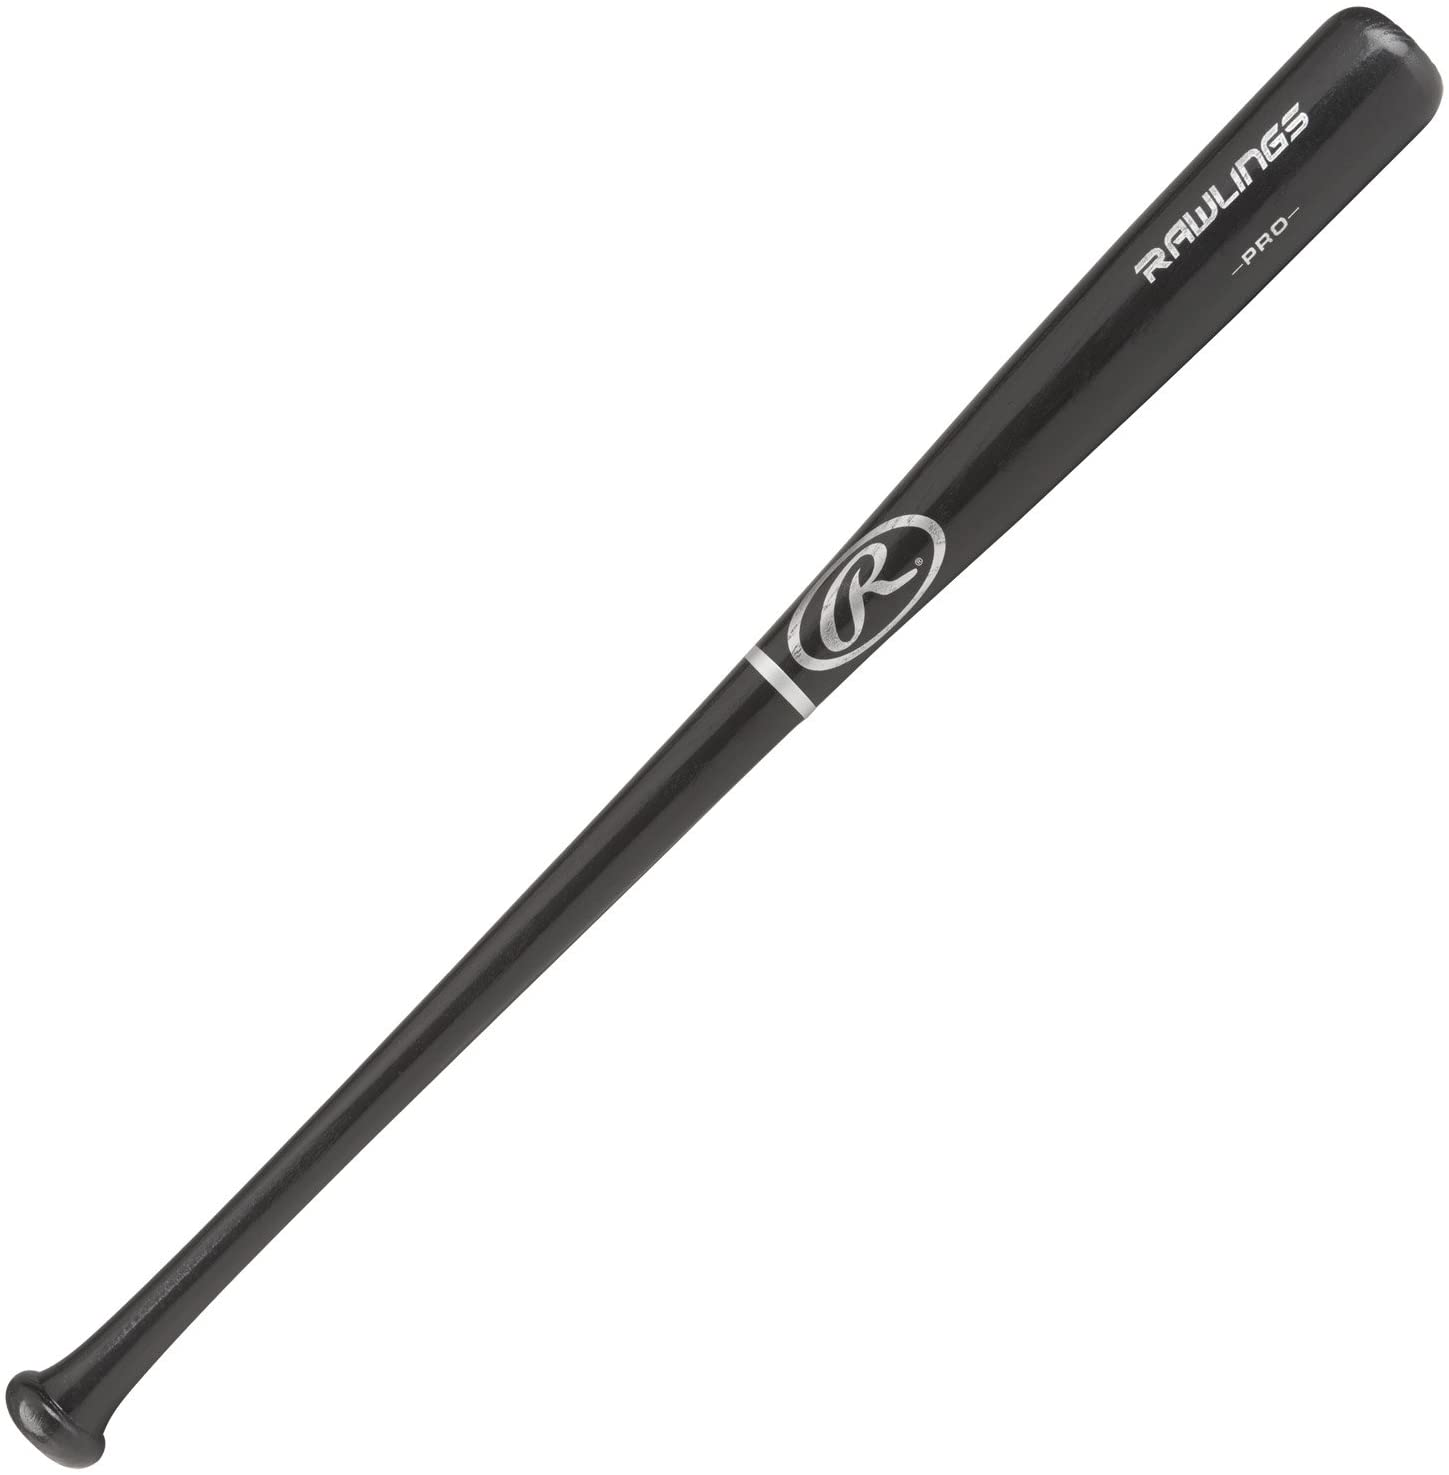 "Rawlings Adirondack Youth Wood Graphite Color 2-1/4"" Barrel Baseball Bat"